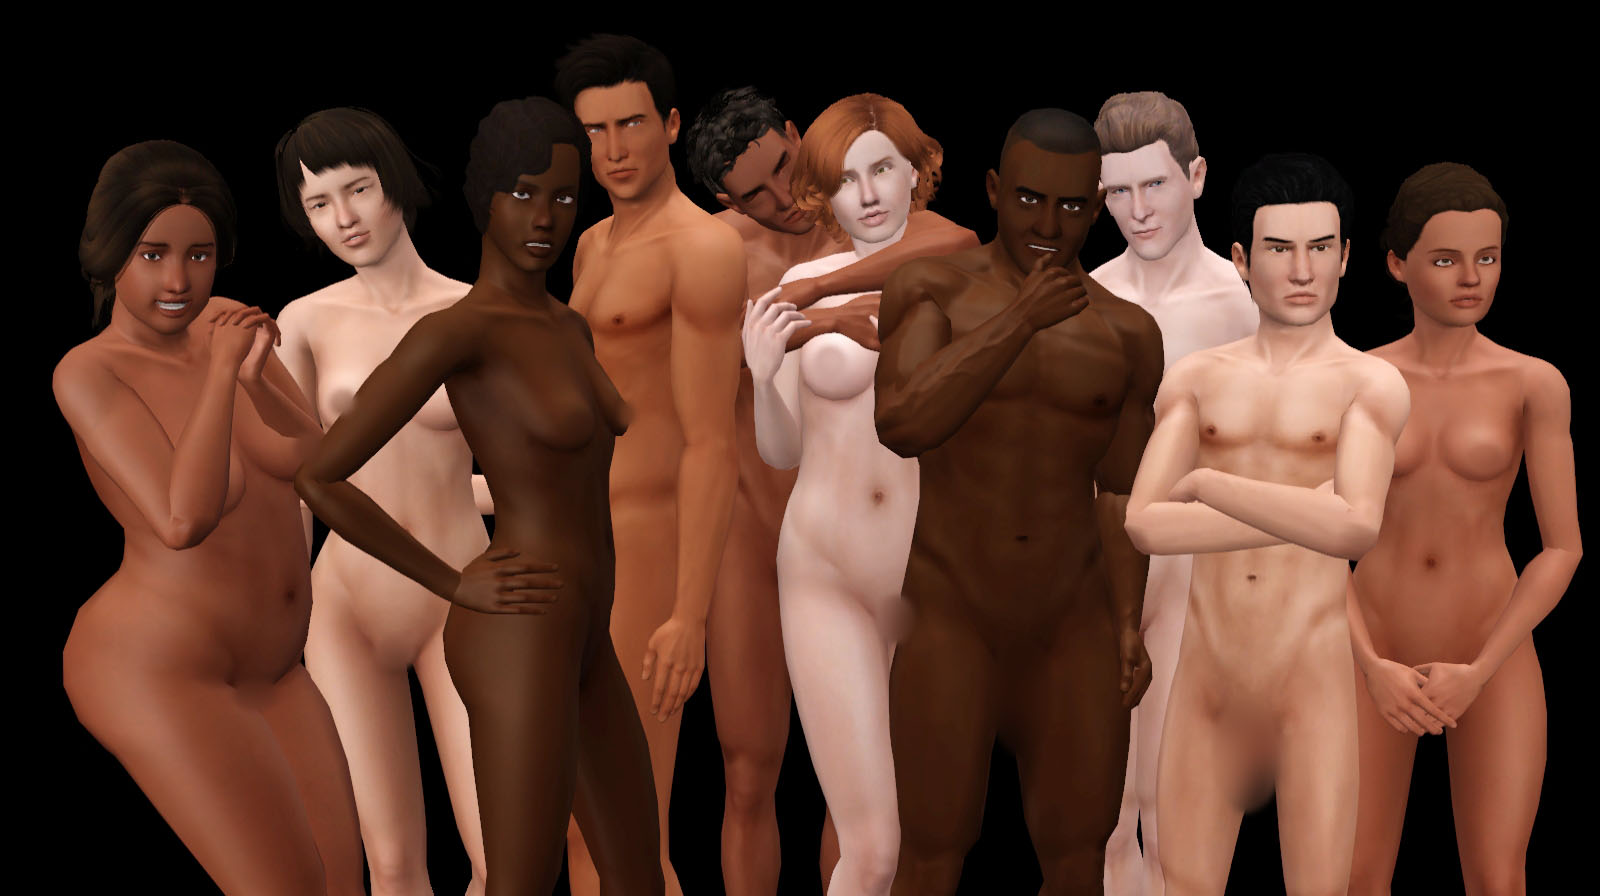 Mods xxx sims3 sexy photos